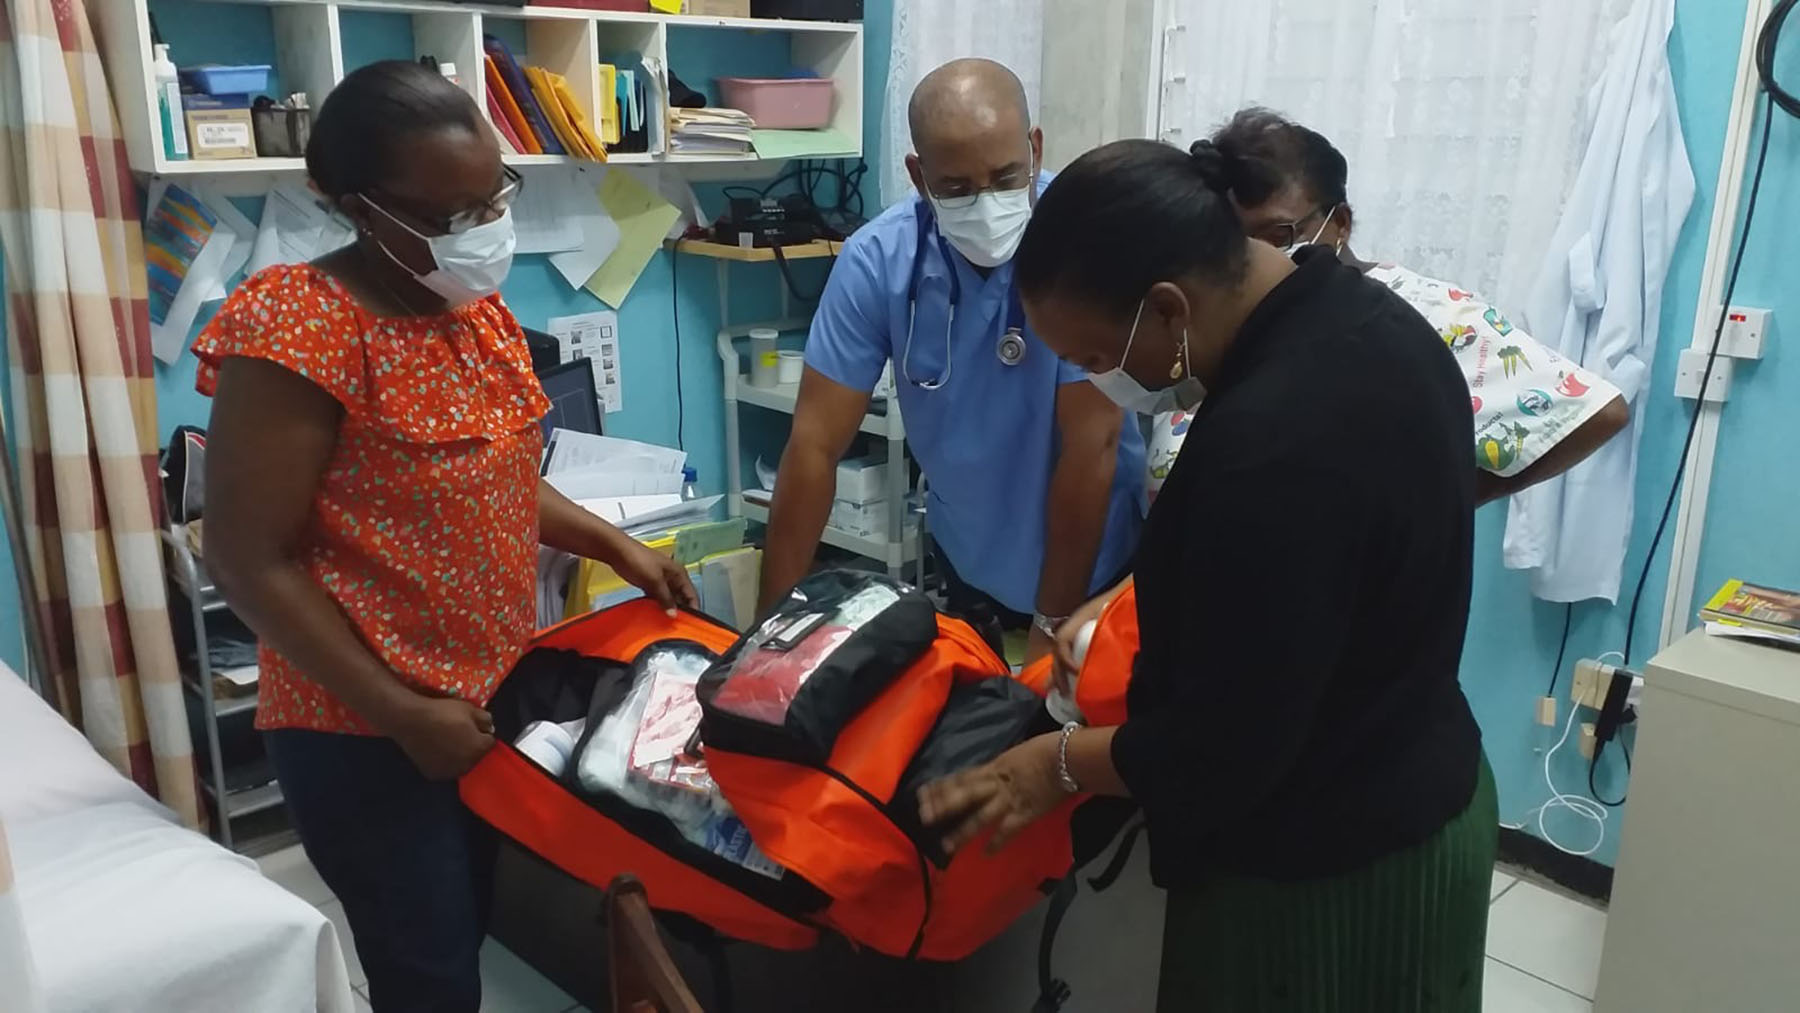 Healthcare professionals in Dominica unpack a cache of emergency medical supplies provided by Direct Relief. The Caribbean nation is bracing for an outbreak of coronavirus cases as the Atlantic hurricane season picks up. (Dr. Laura Espirit/Direct Relief)